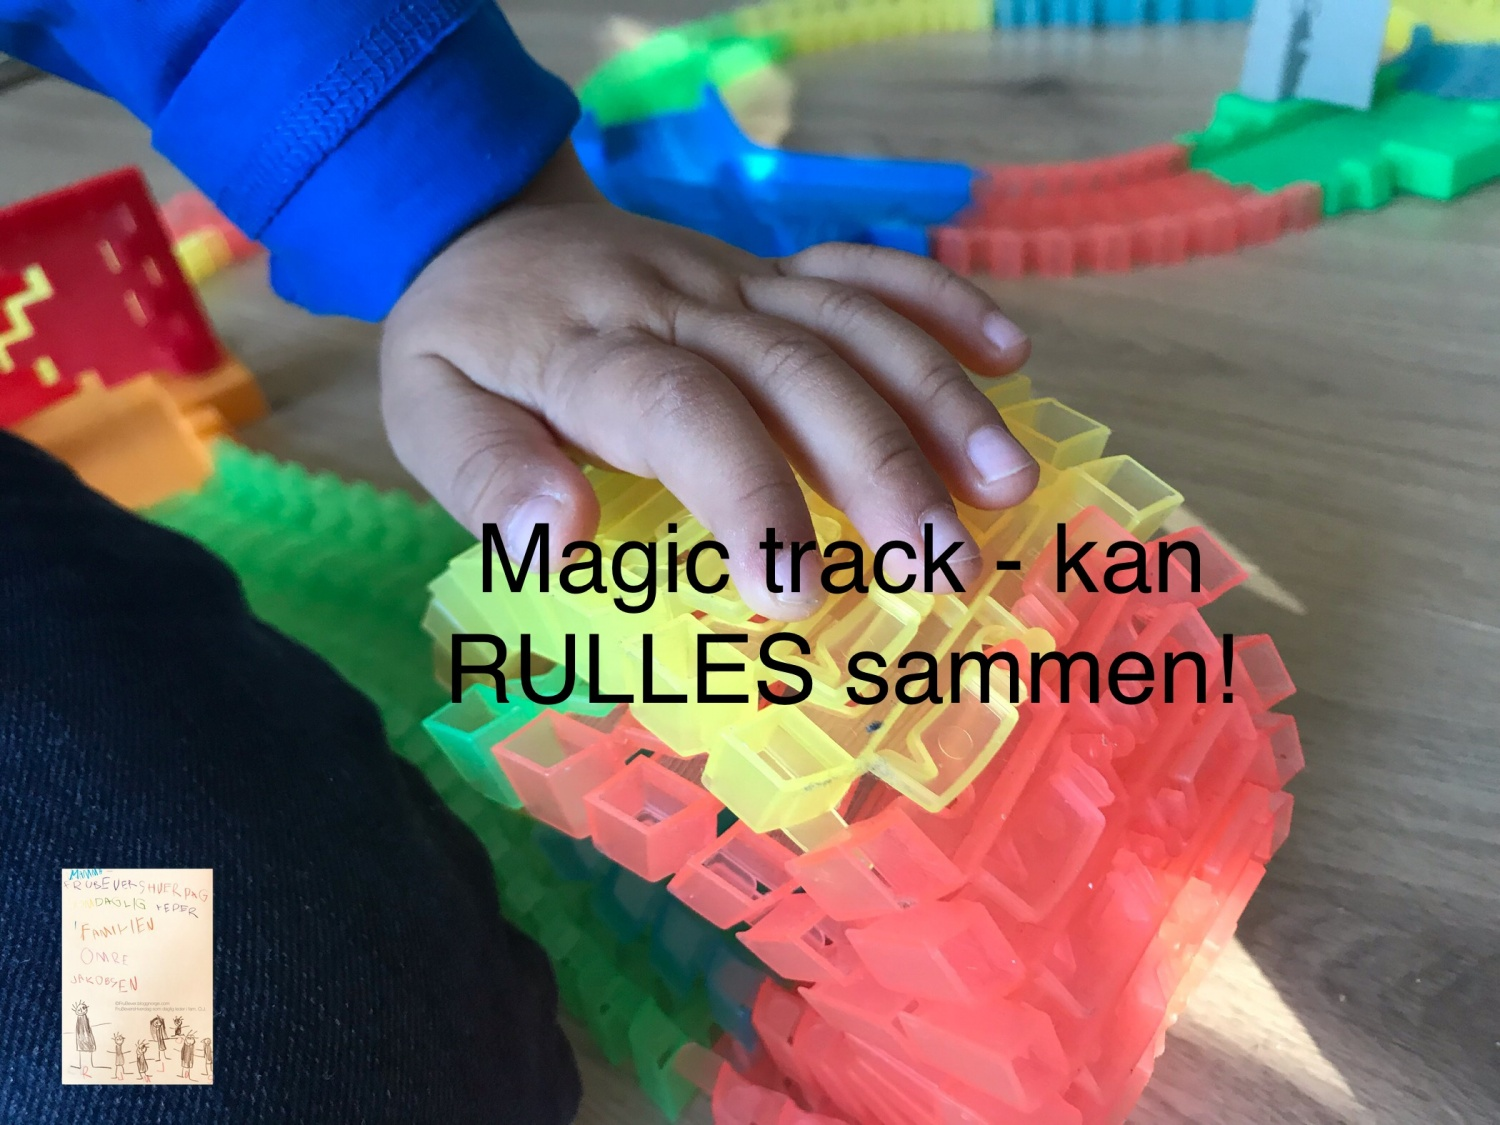 Magic track @FruBeversHverdag // temabursdag